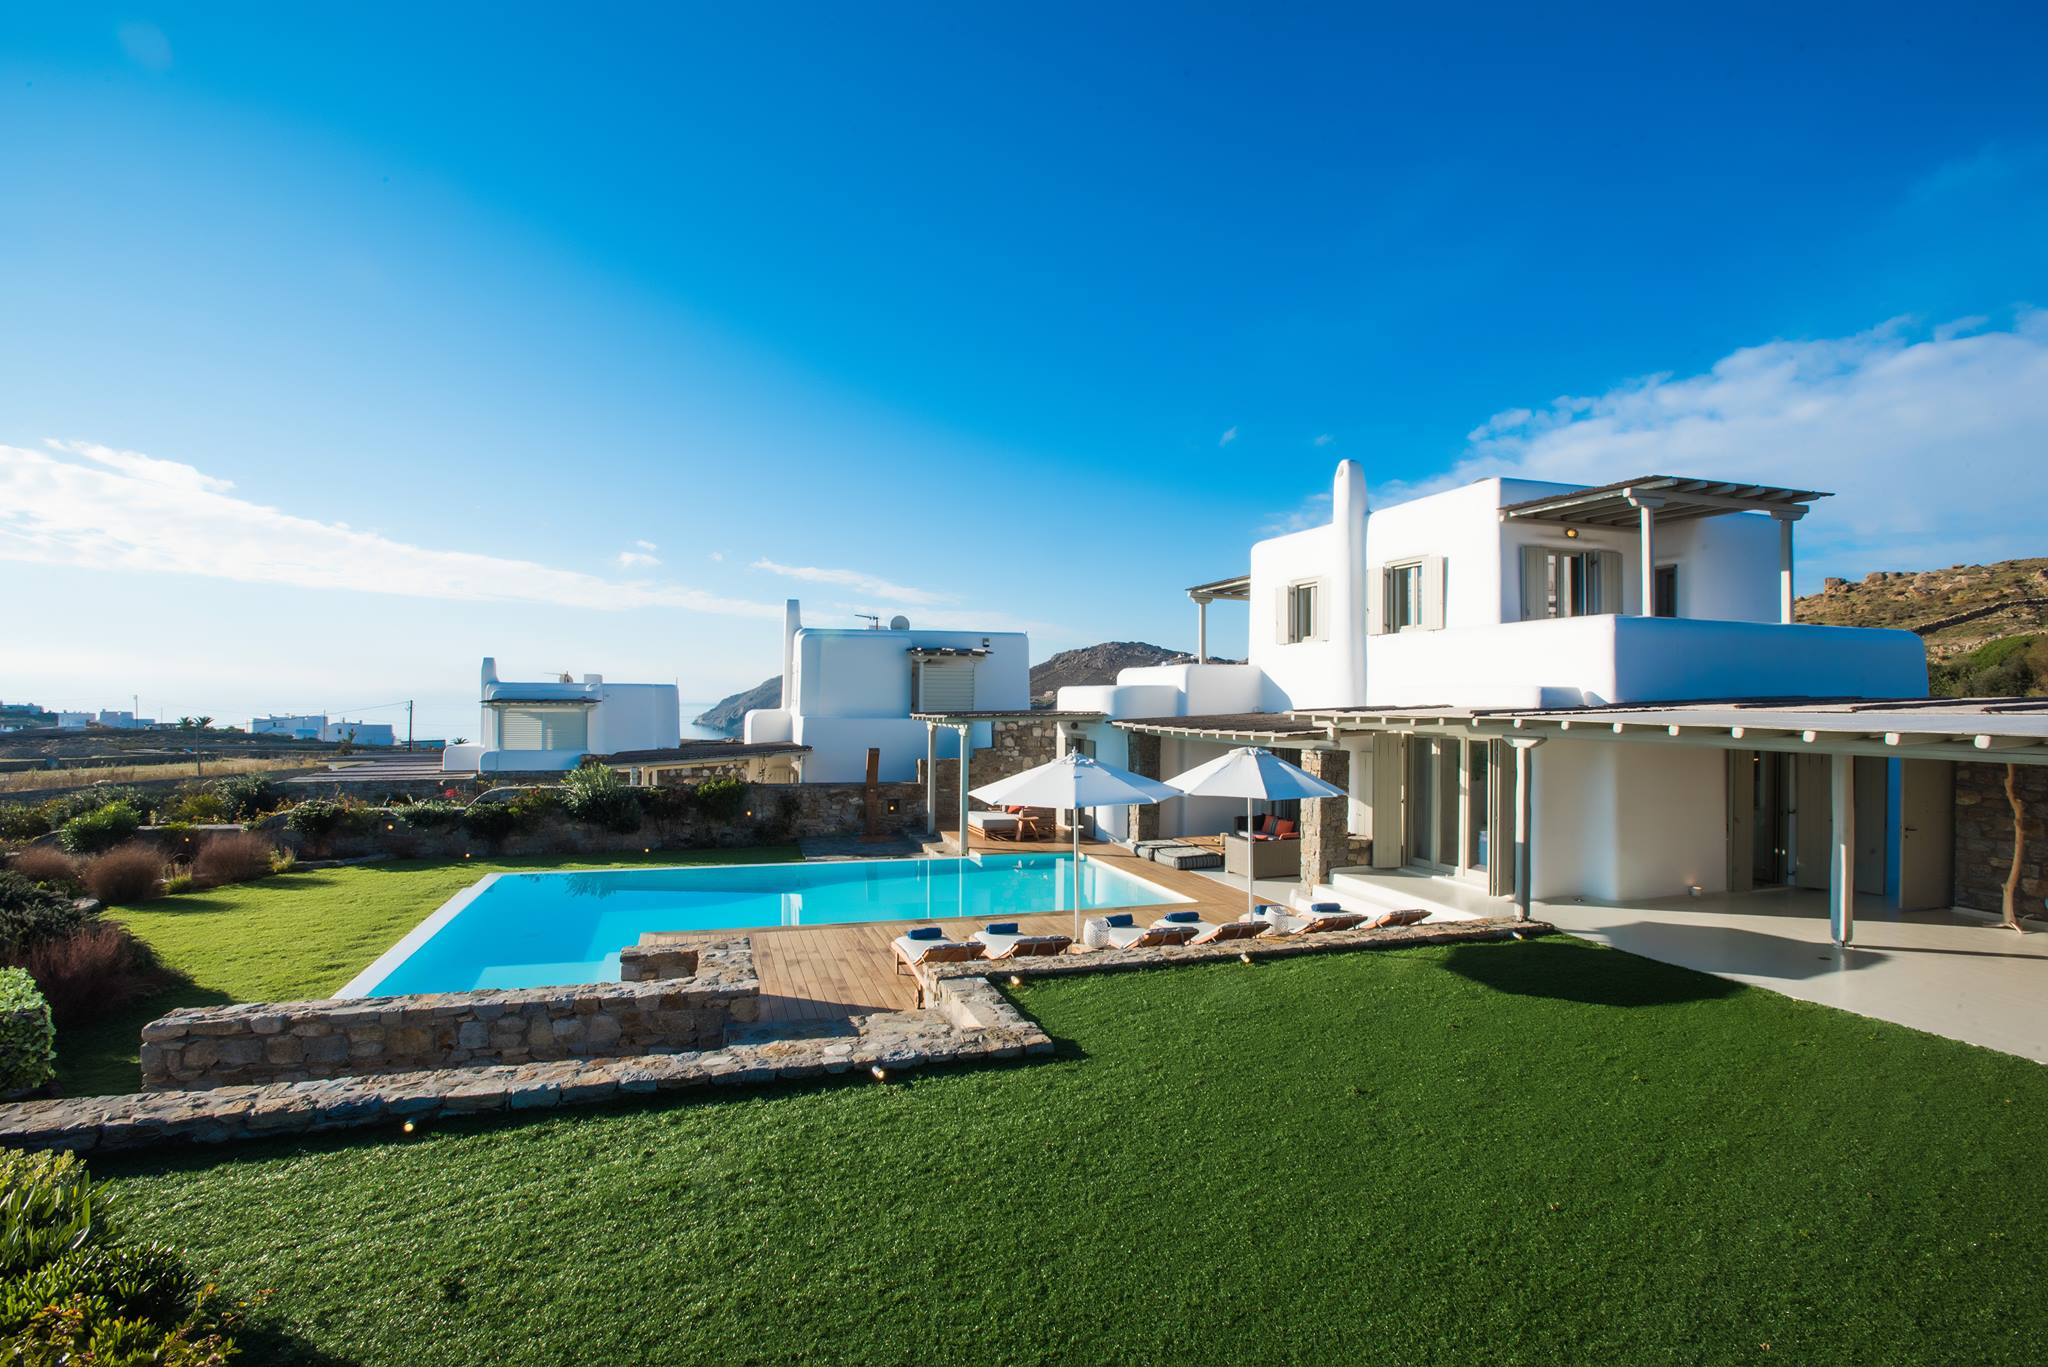 Property Image 1 - Peaceful 5 bedroom villa with private pool